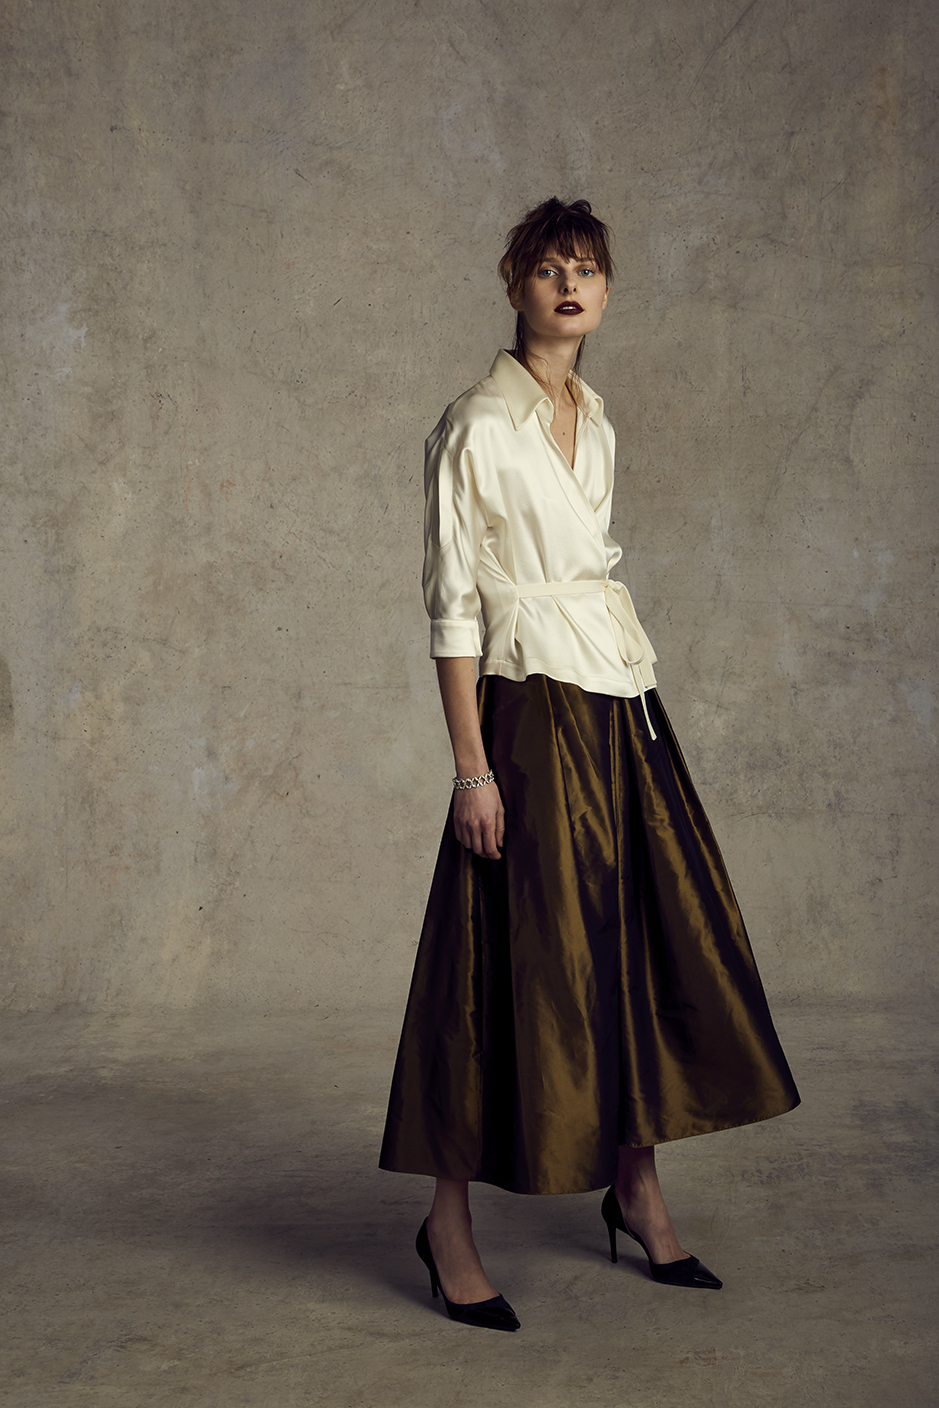 MARKUS JACKET   CREPE BACK SILK SATIN      DARIA SKIRT   SILK TAFFETA      Contact for inquiry